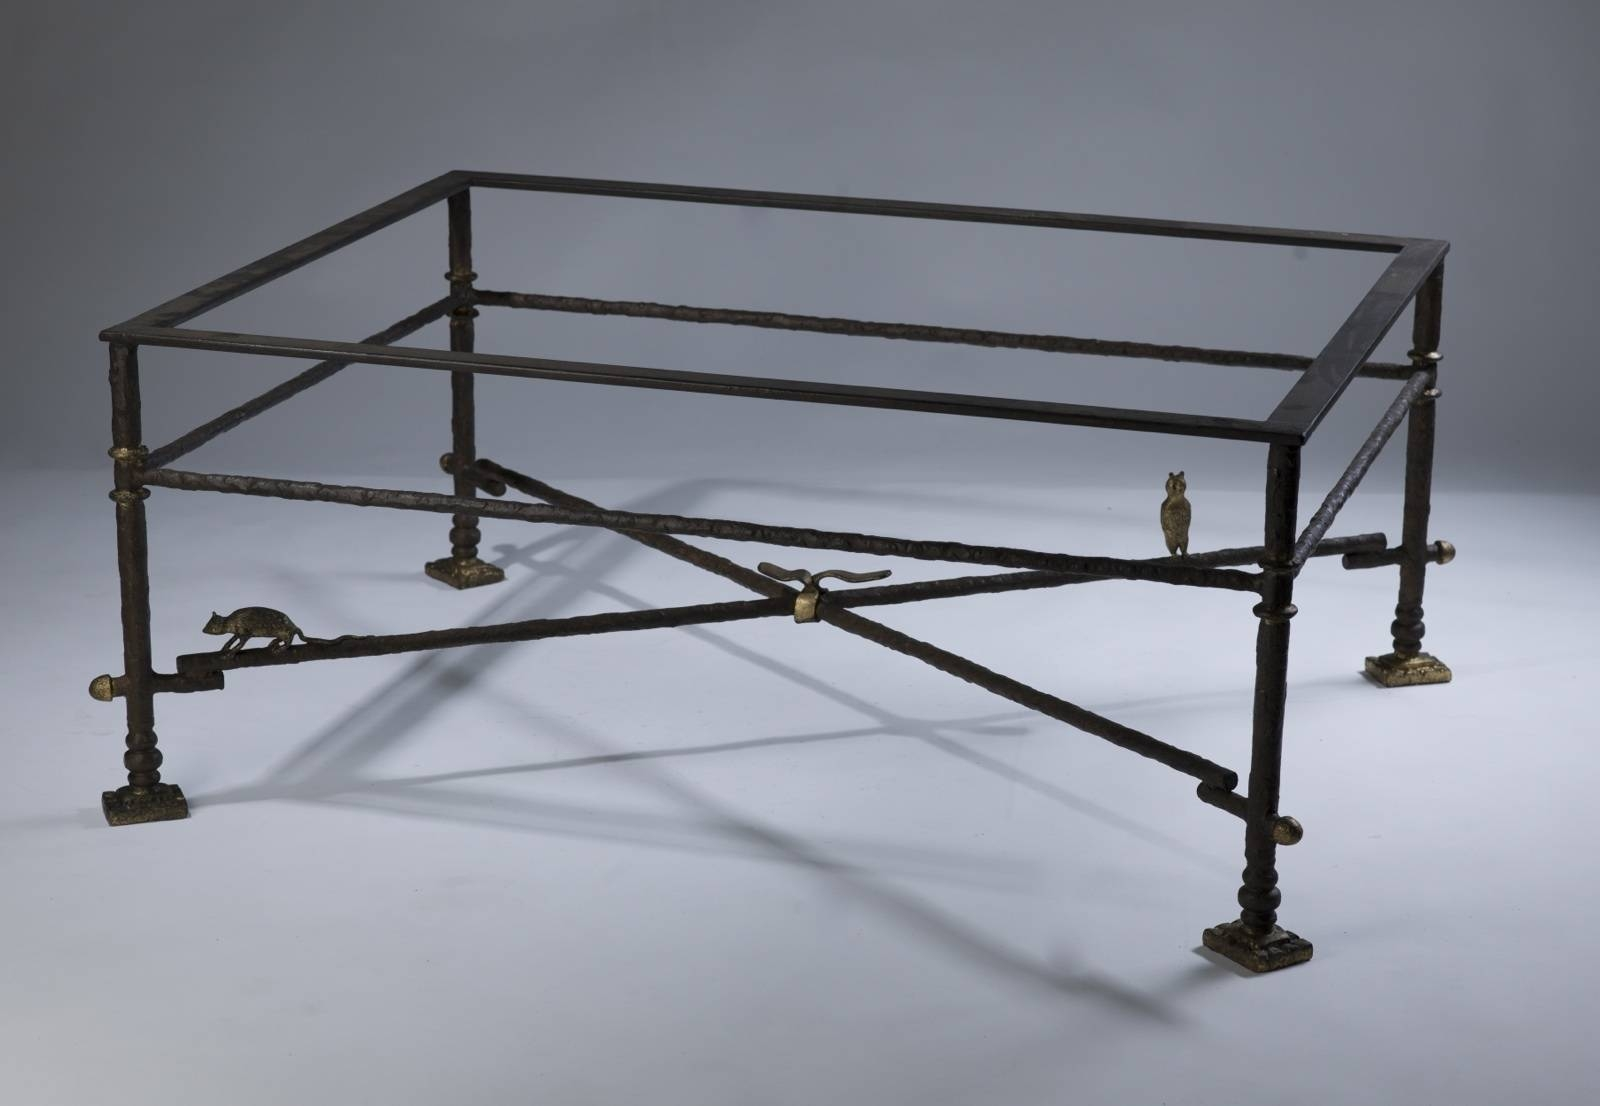 Square Glass Wrought Iron Coffee Table | Coffee Tables Decoration with regard to Glass and Metal Coffee Tables (Image 29 of 30)